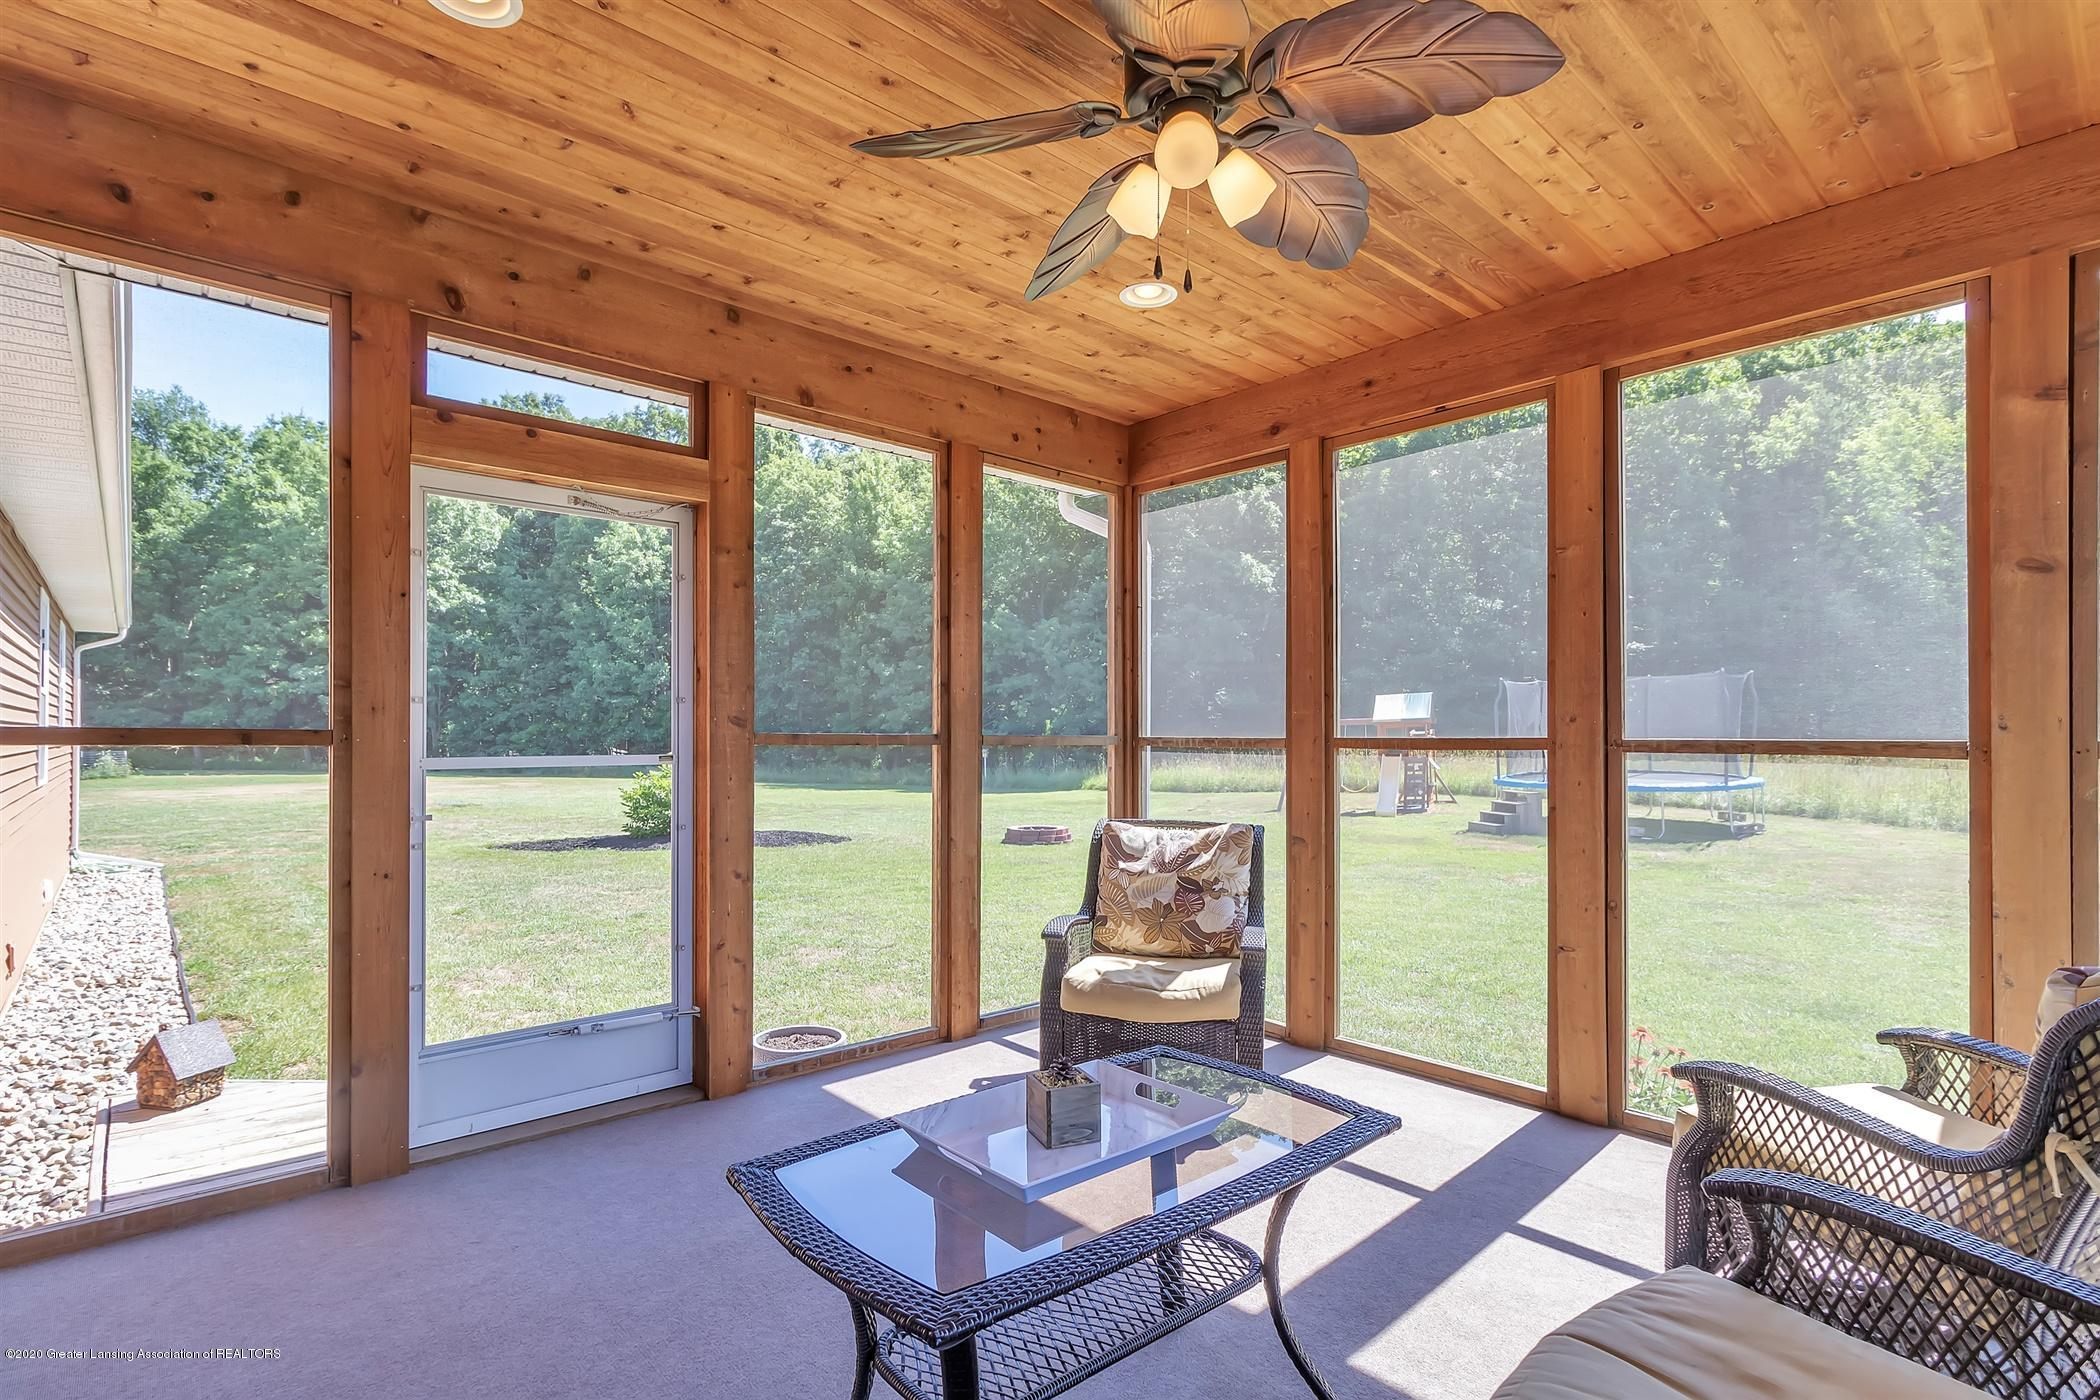 6501 Loomis Rd - 17-6501-Loomis-Rd-WindowStill-Real- - 14